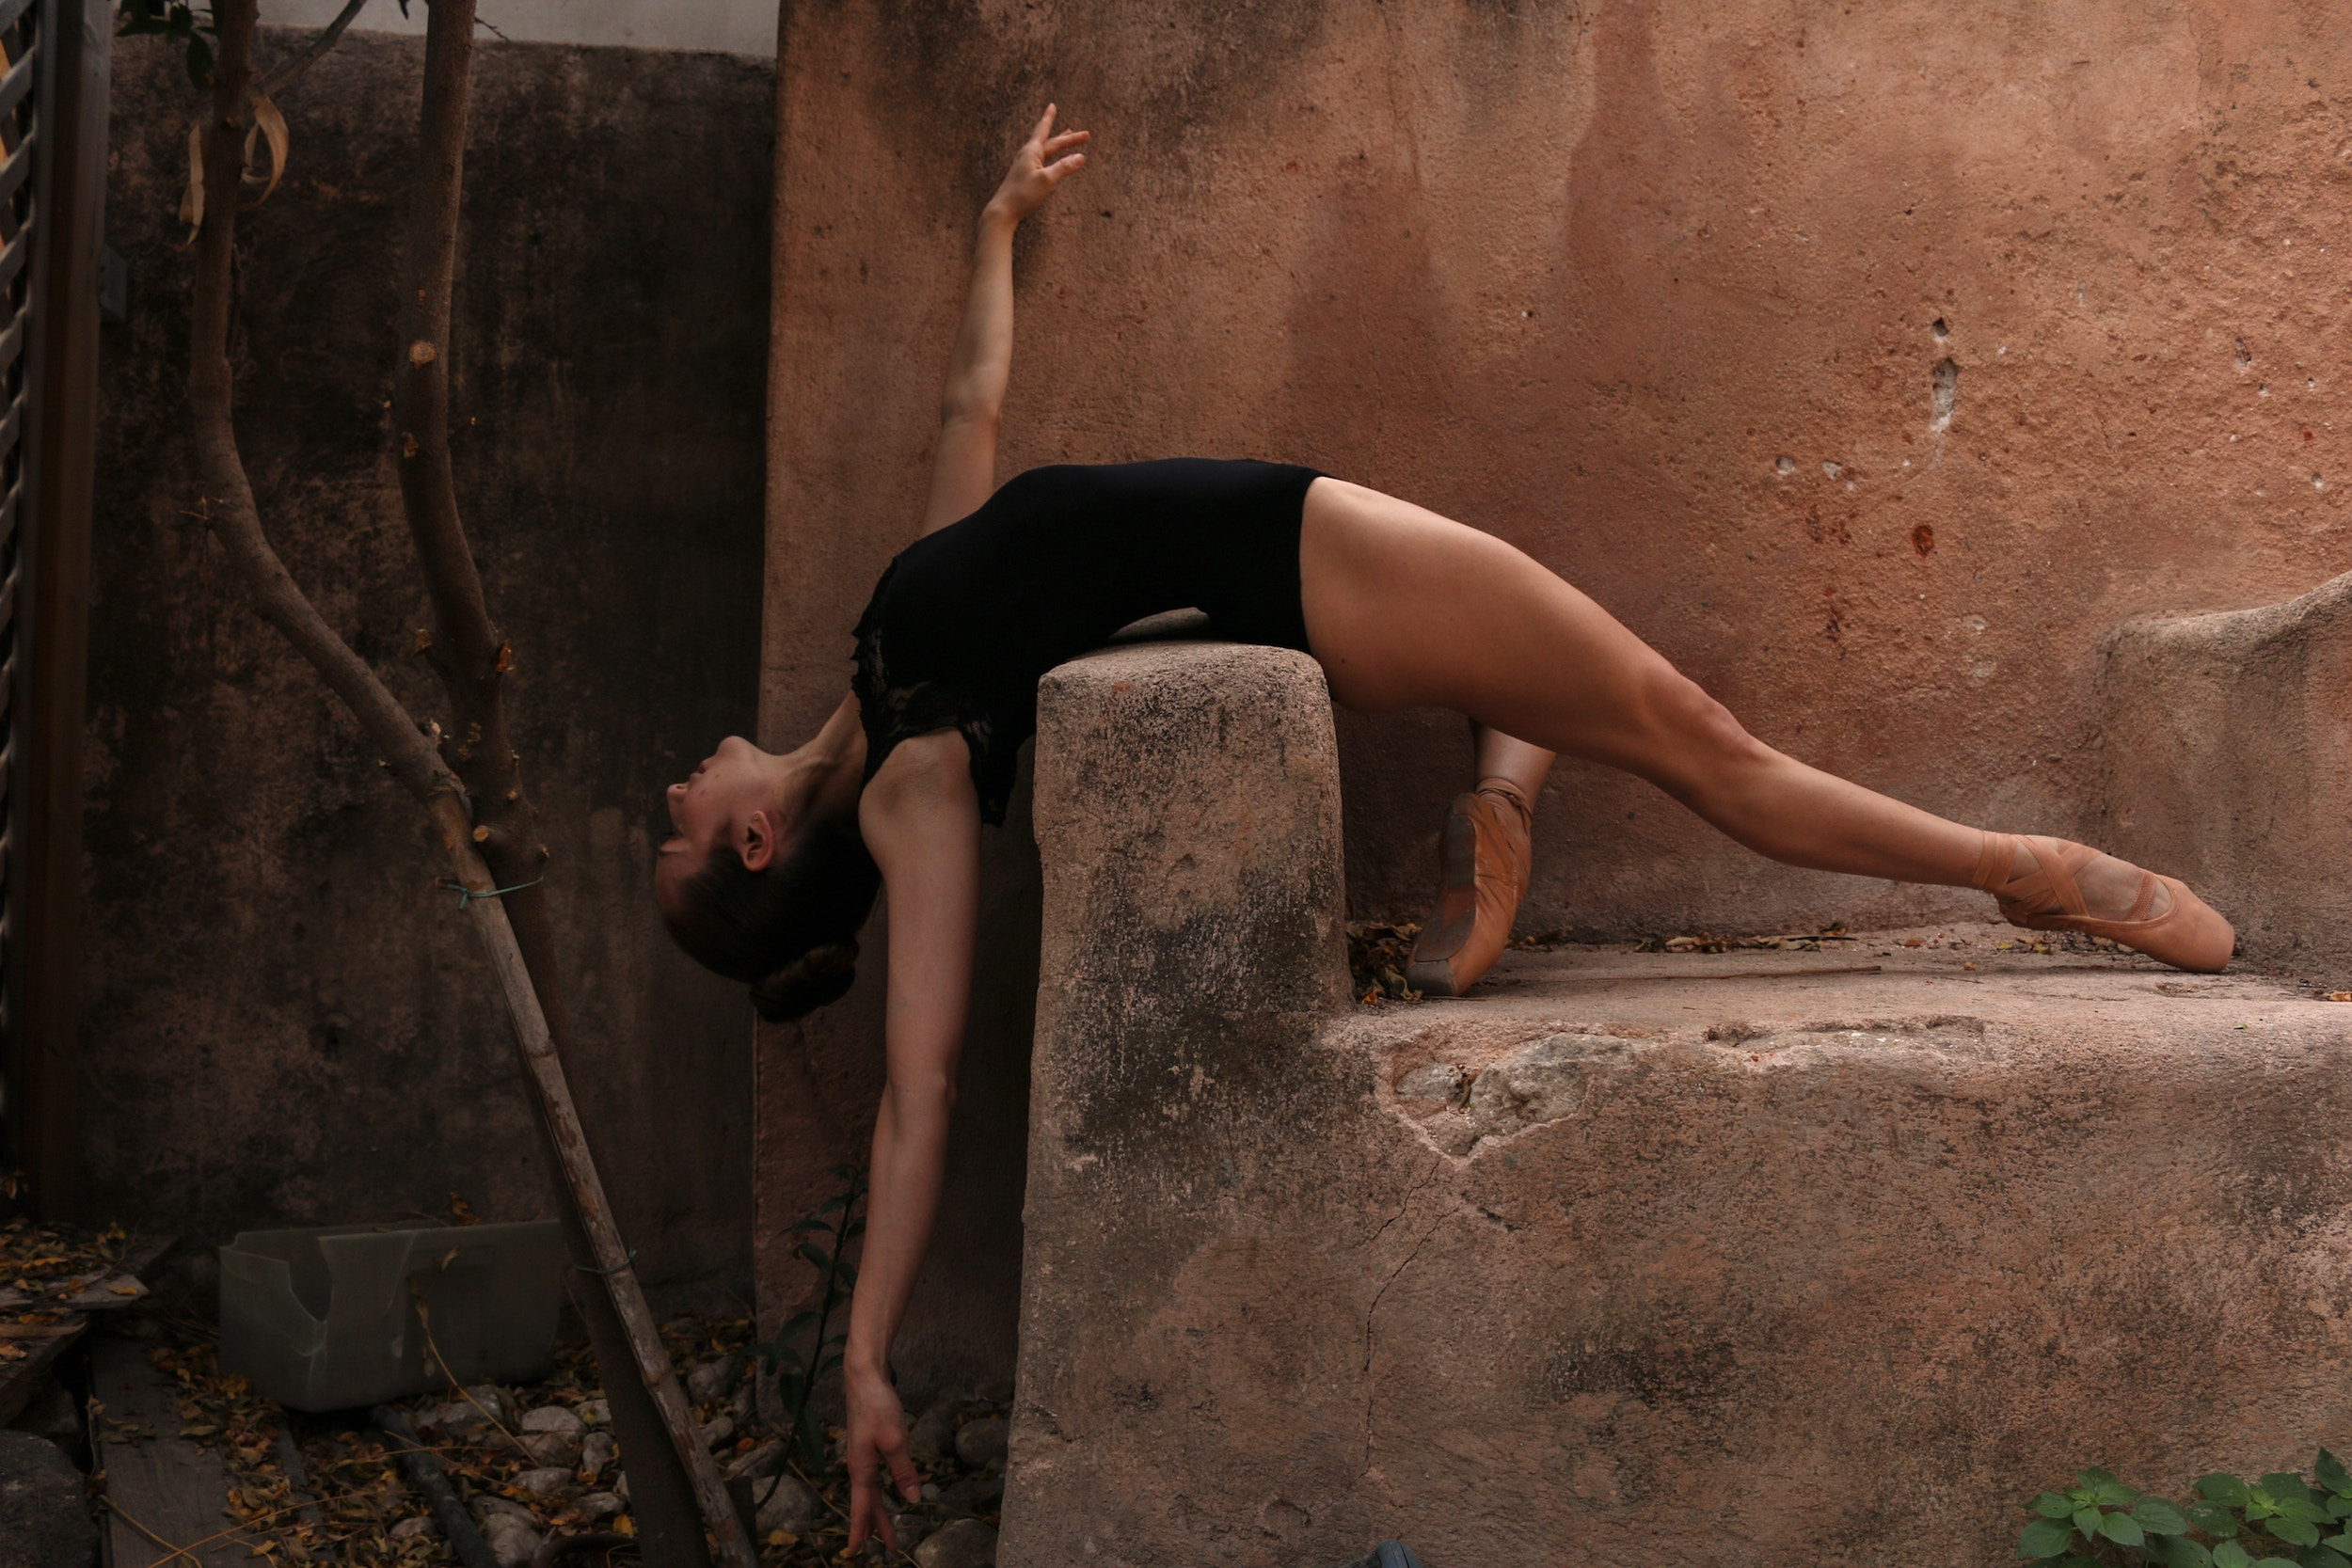 liel anapolsky unsplash woman doing ballet